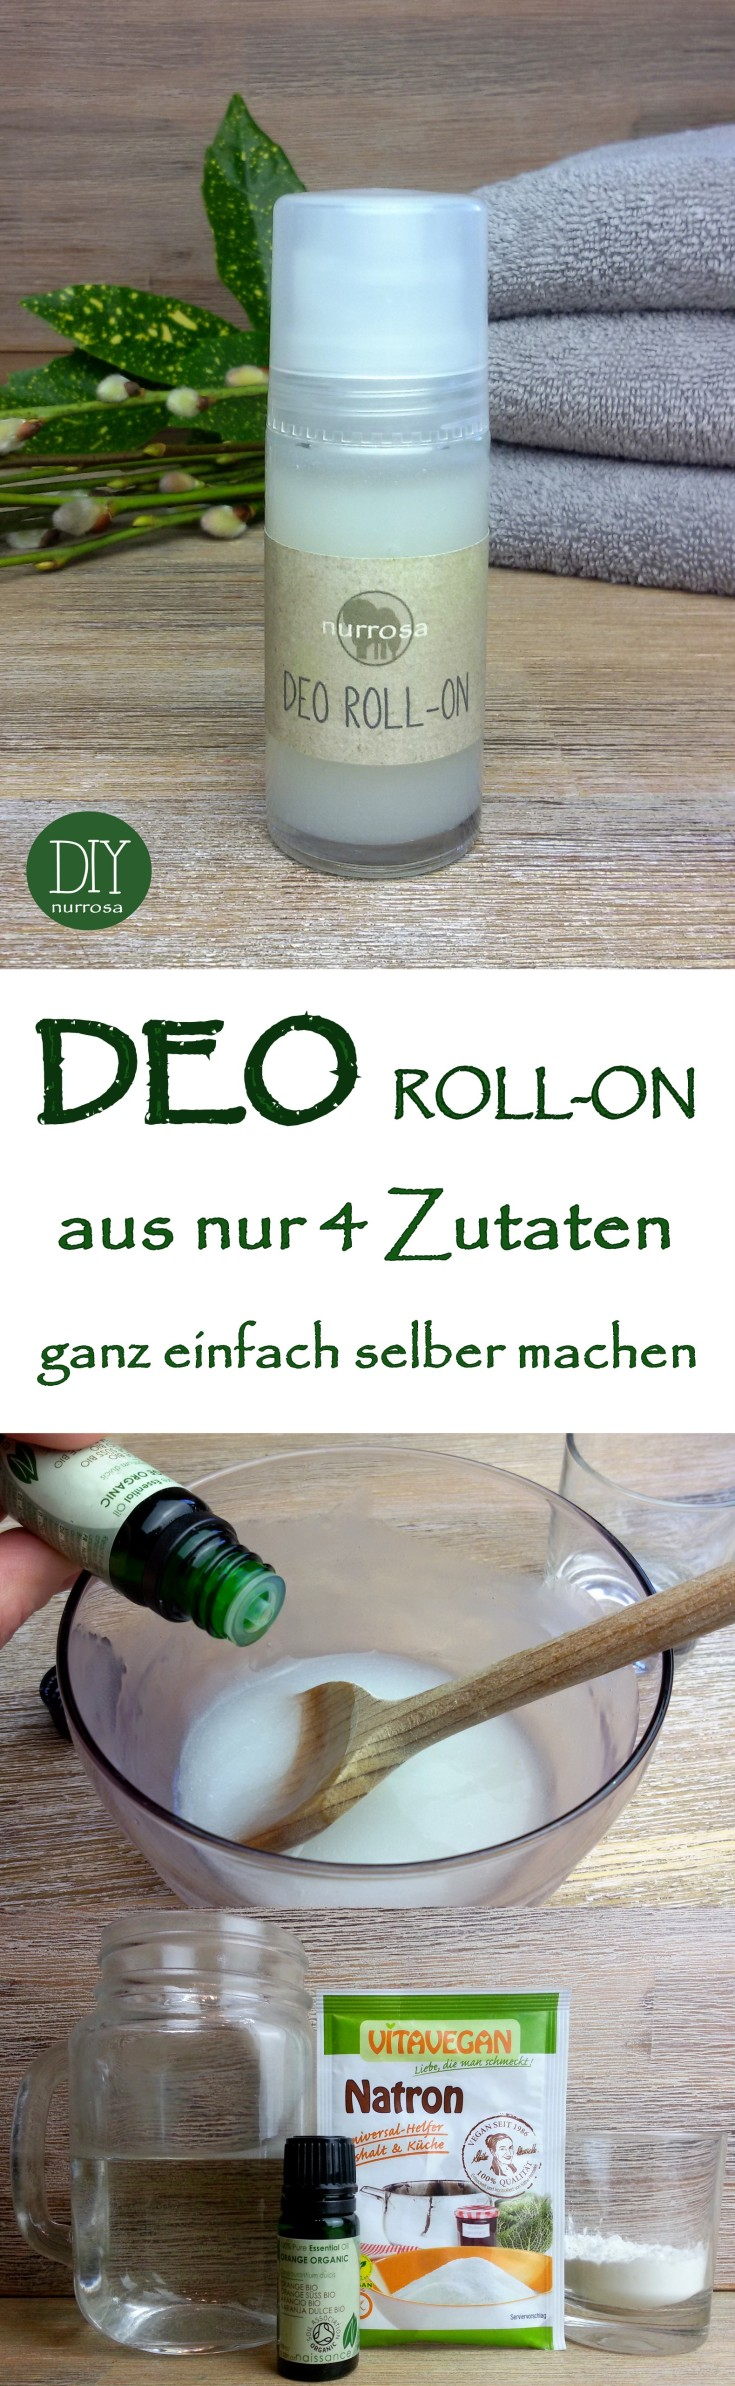 deo-roll-on-selber-machen9